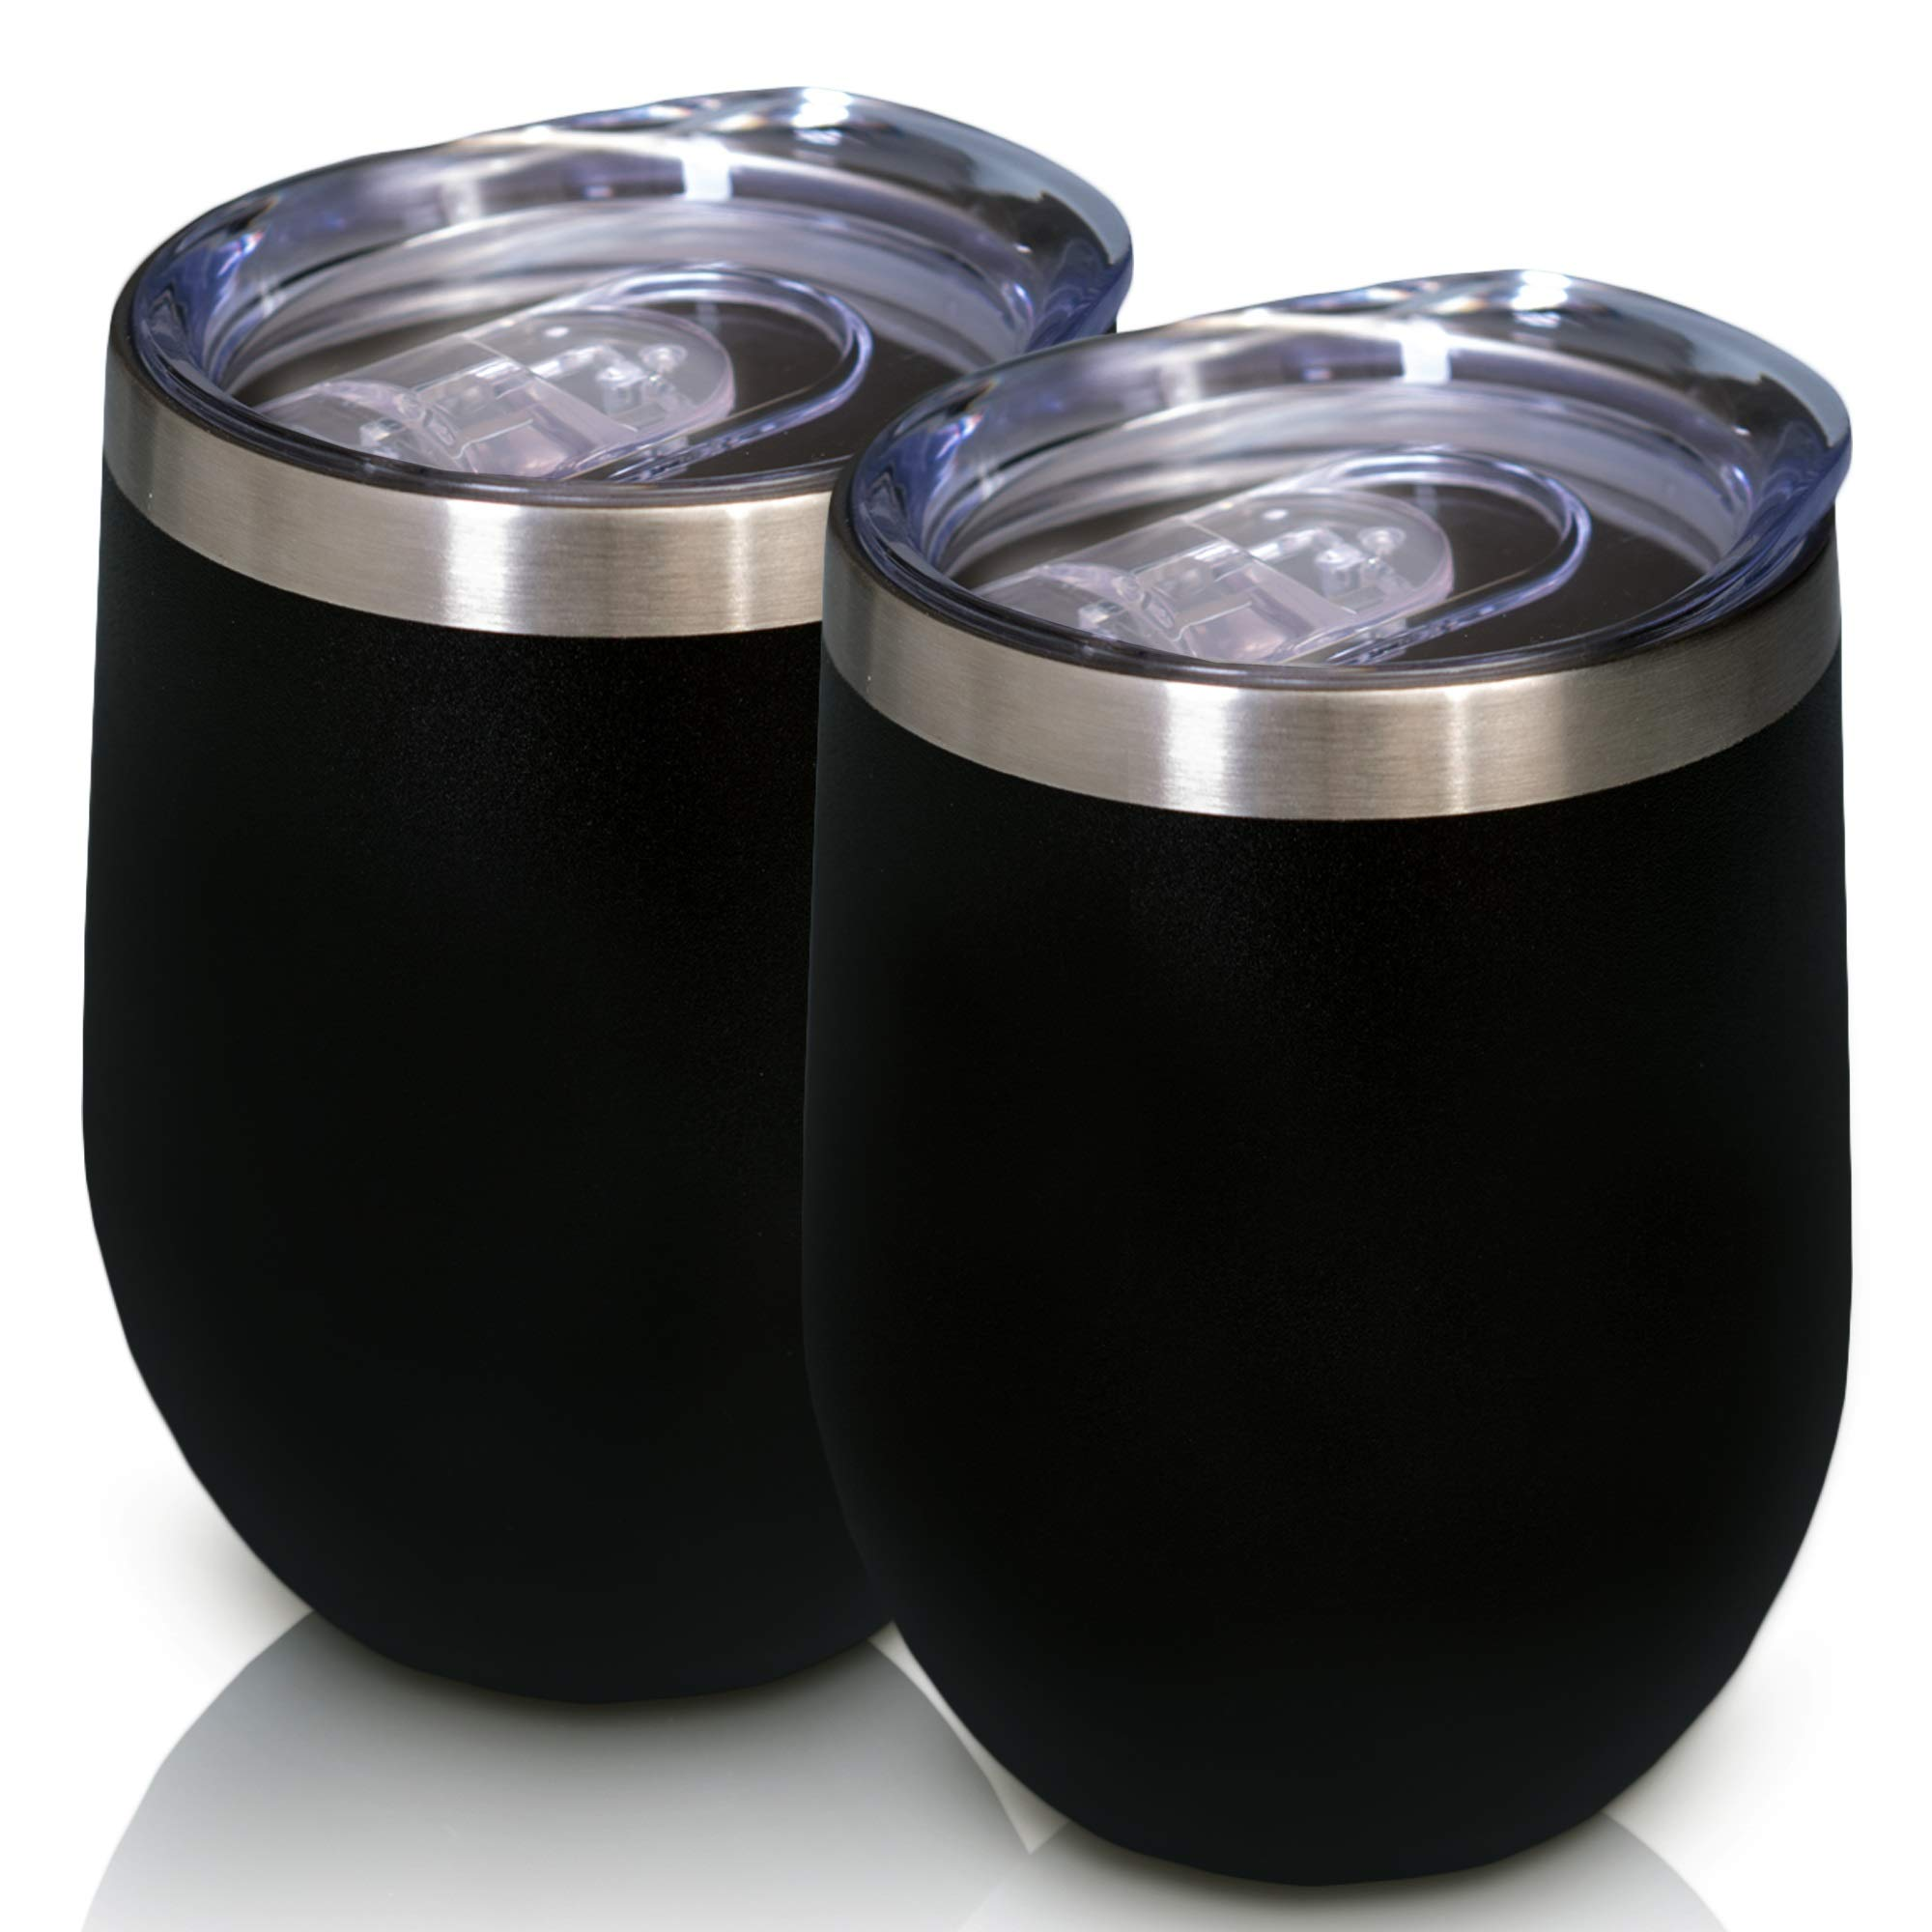 Great tumblers! Keeps cold for hours!